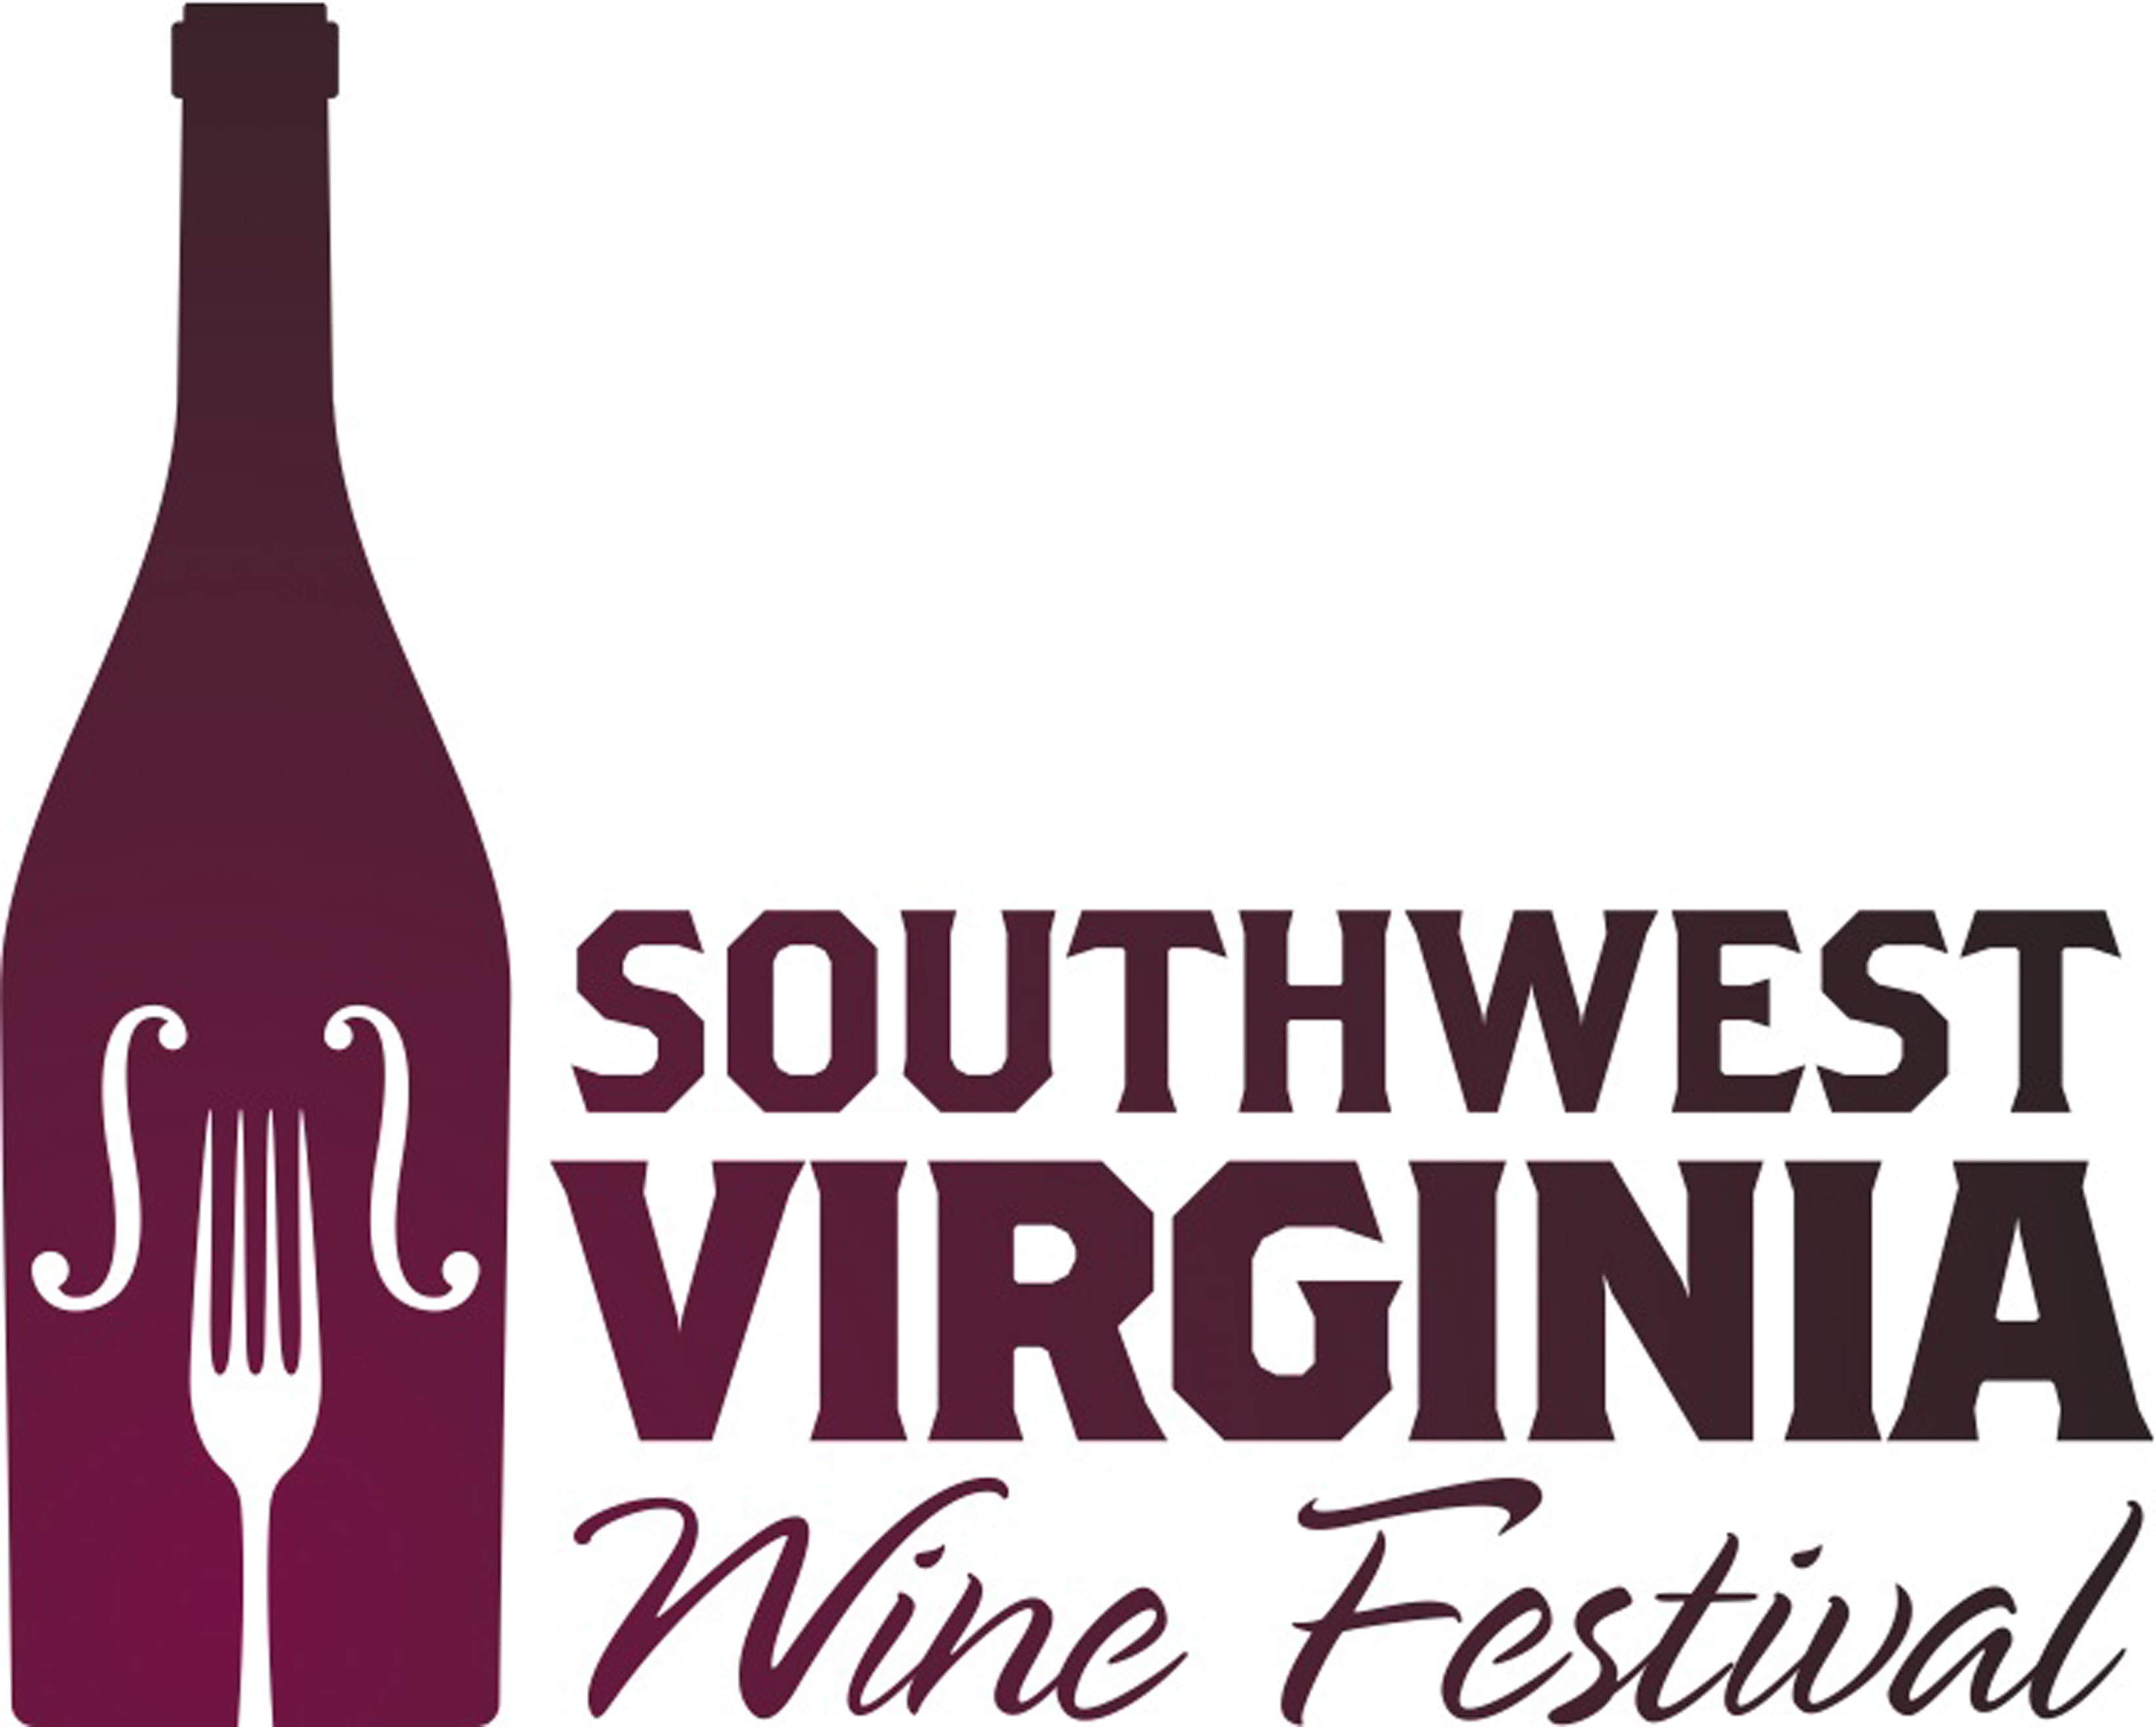 In Virginia wine country, theres a whole vineyard of